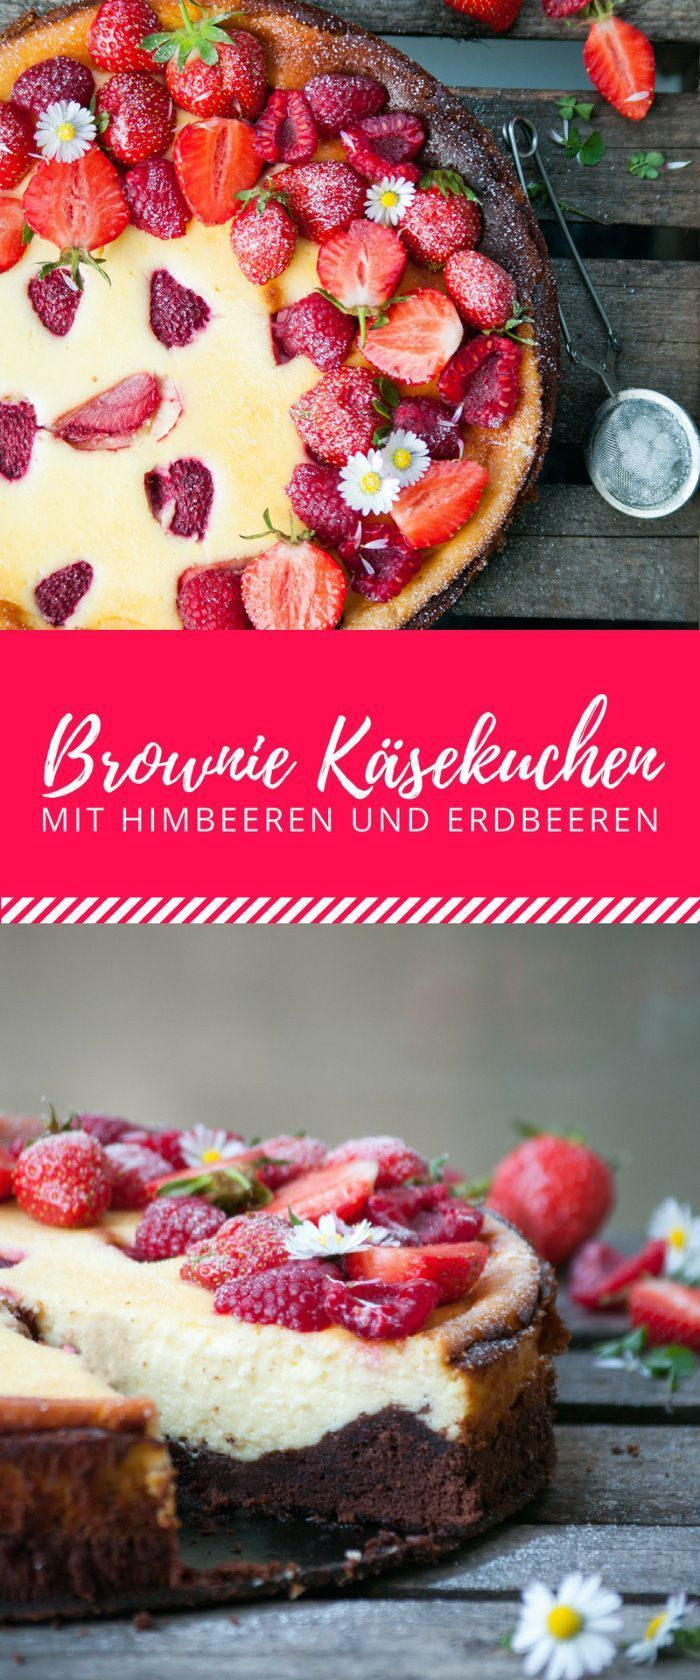 Brownie cheesecake with raspberries and strawberries - Brownies + cheesecake + fruits = very big c